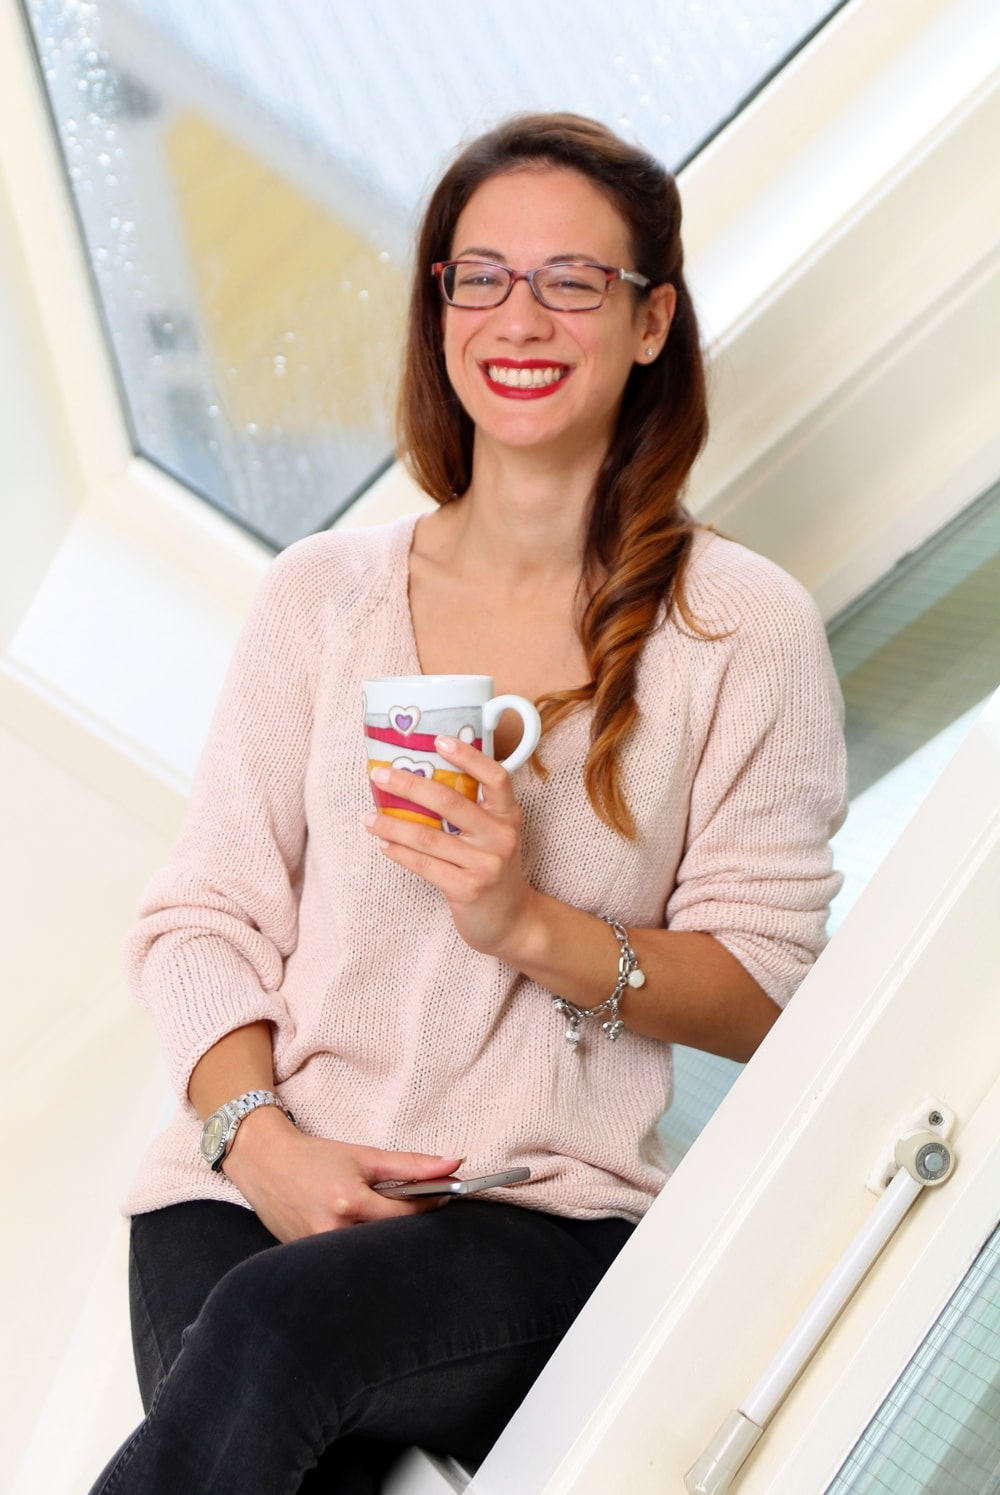 Young Entrepreneurs Talk, Maria Rosaria di Lecce, Rosie, Coffee and Smile, Daily Routine